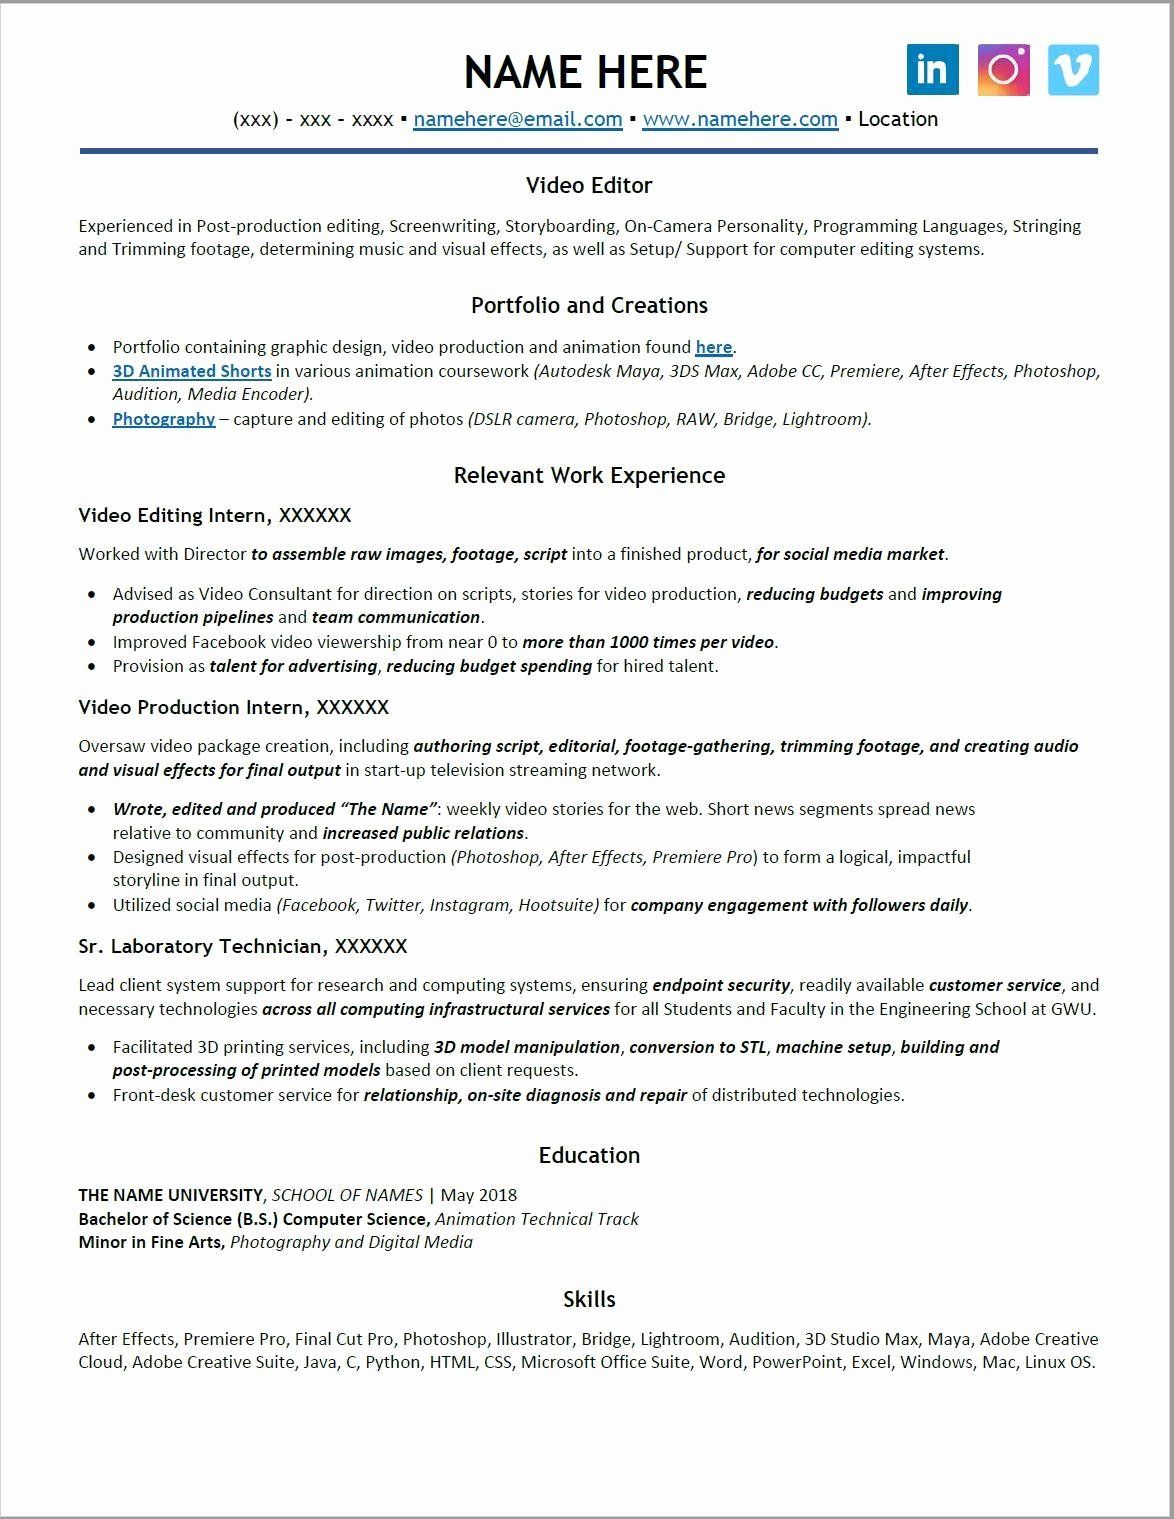 Video Editor Resume Examples Beautiful What S Wrong with